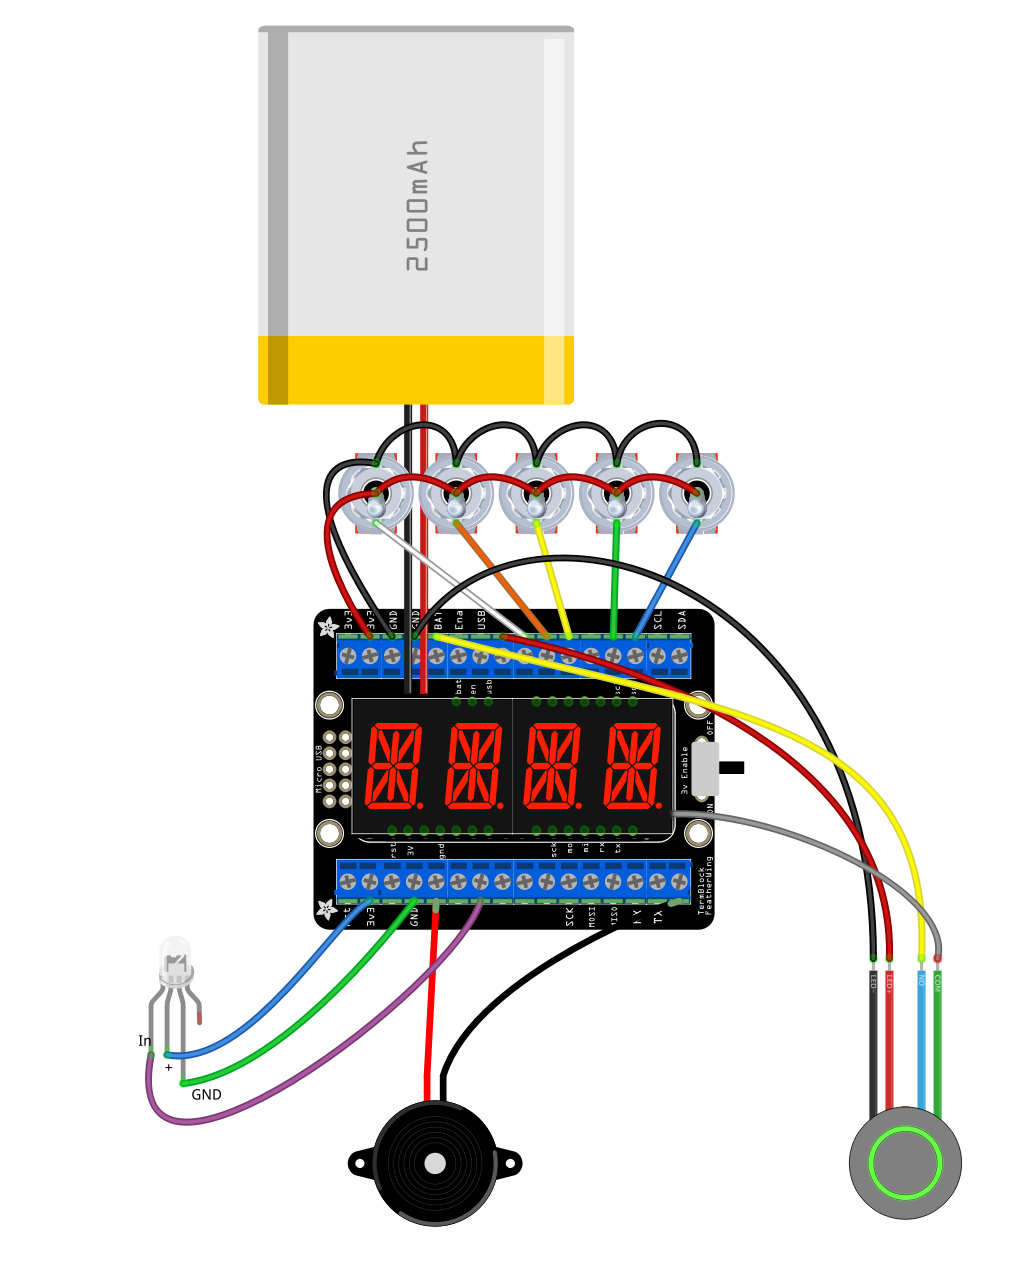 projects_boxFourCircuit_5.png